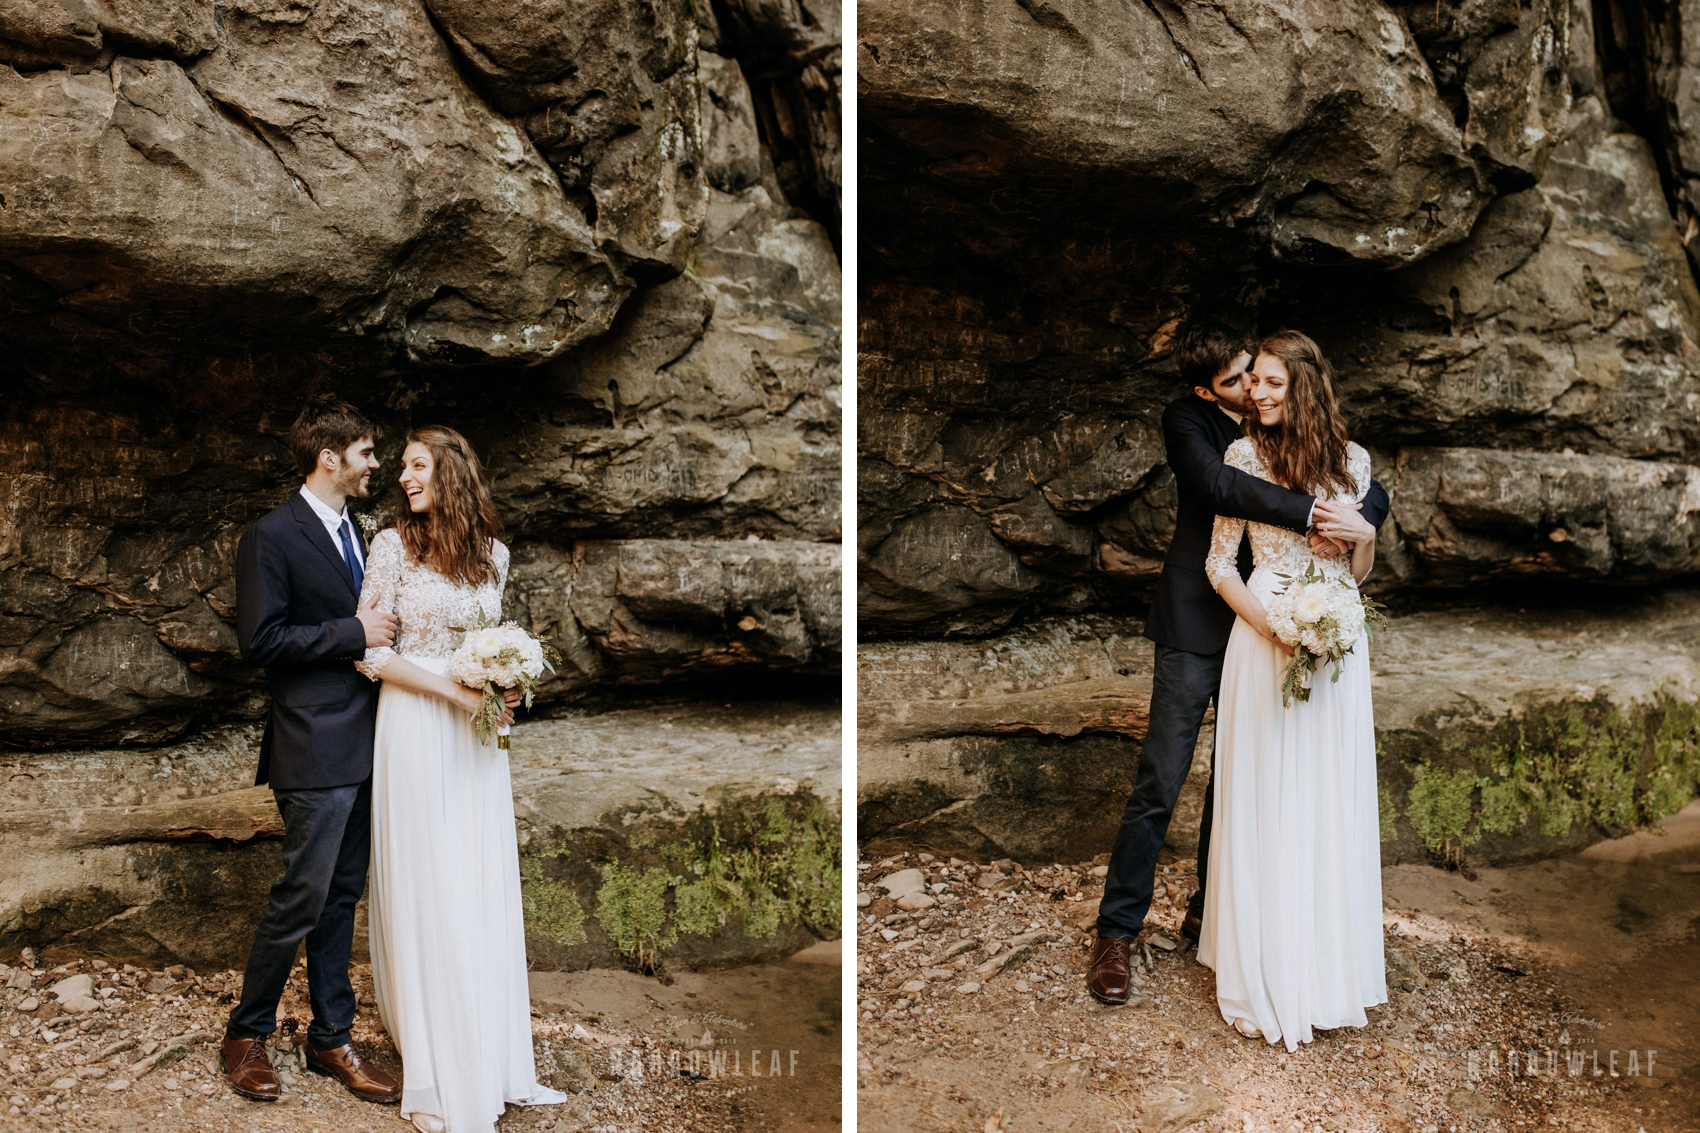 Perrot-State-Park-Baraboo-WIFall-adventure-Elopement-Narrowleaf_Love_and_Adventure_Photography-013-014.jpg